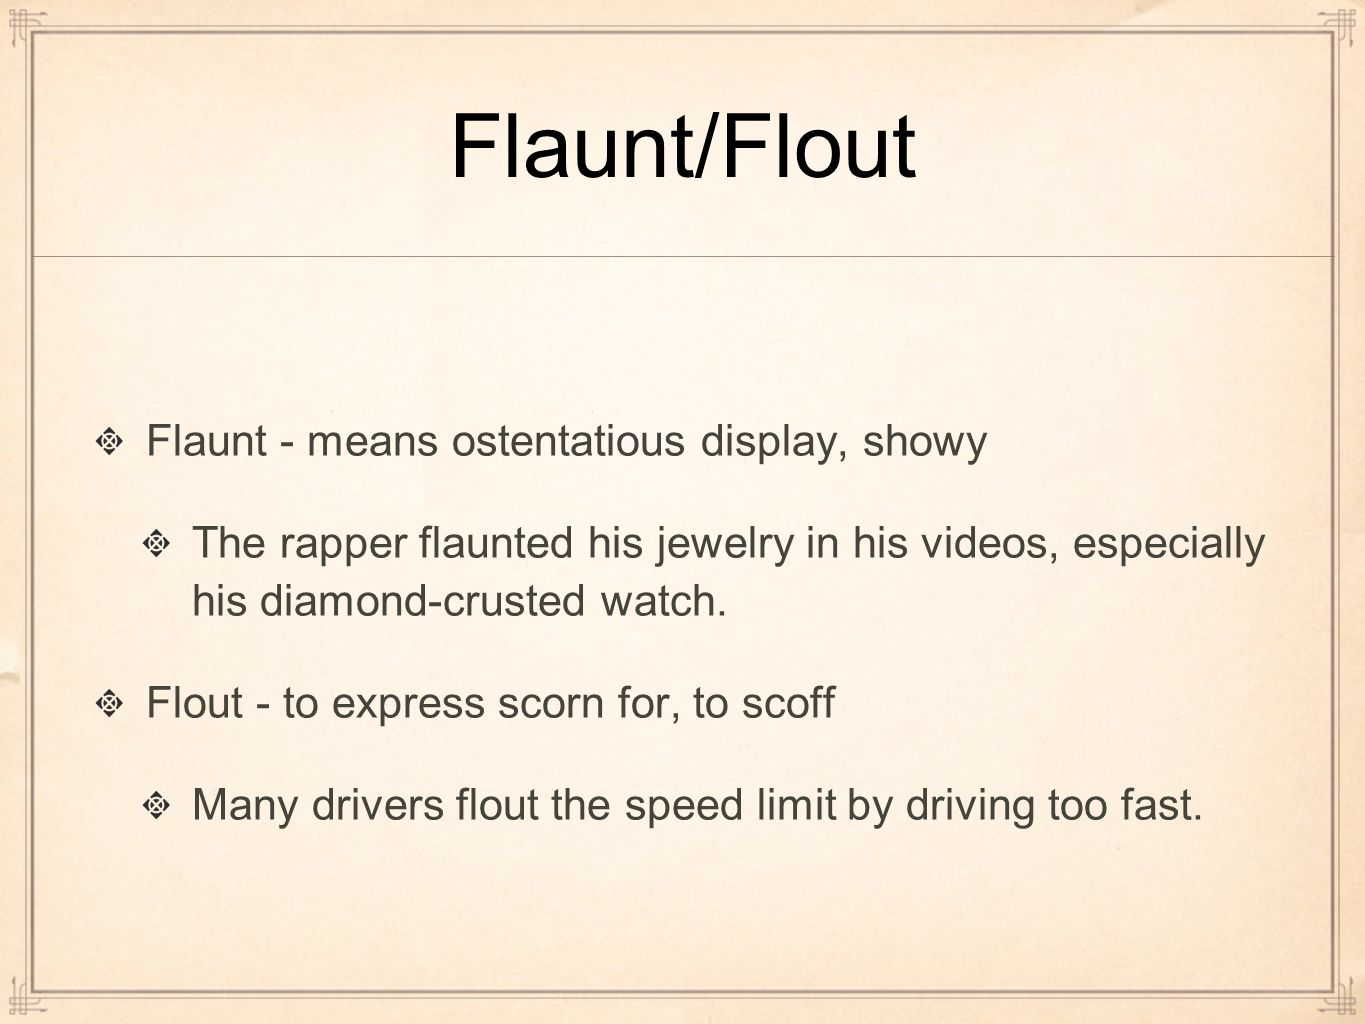 Flaunt/Flout Flaunt - means ostentatious display, showy The rapper flaunted his jewelry in his videos, especially his diamond-crusted watch.